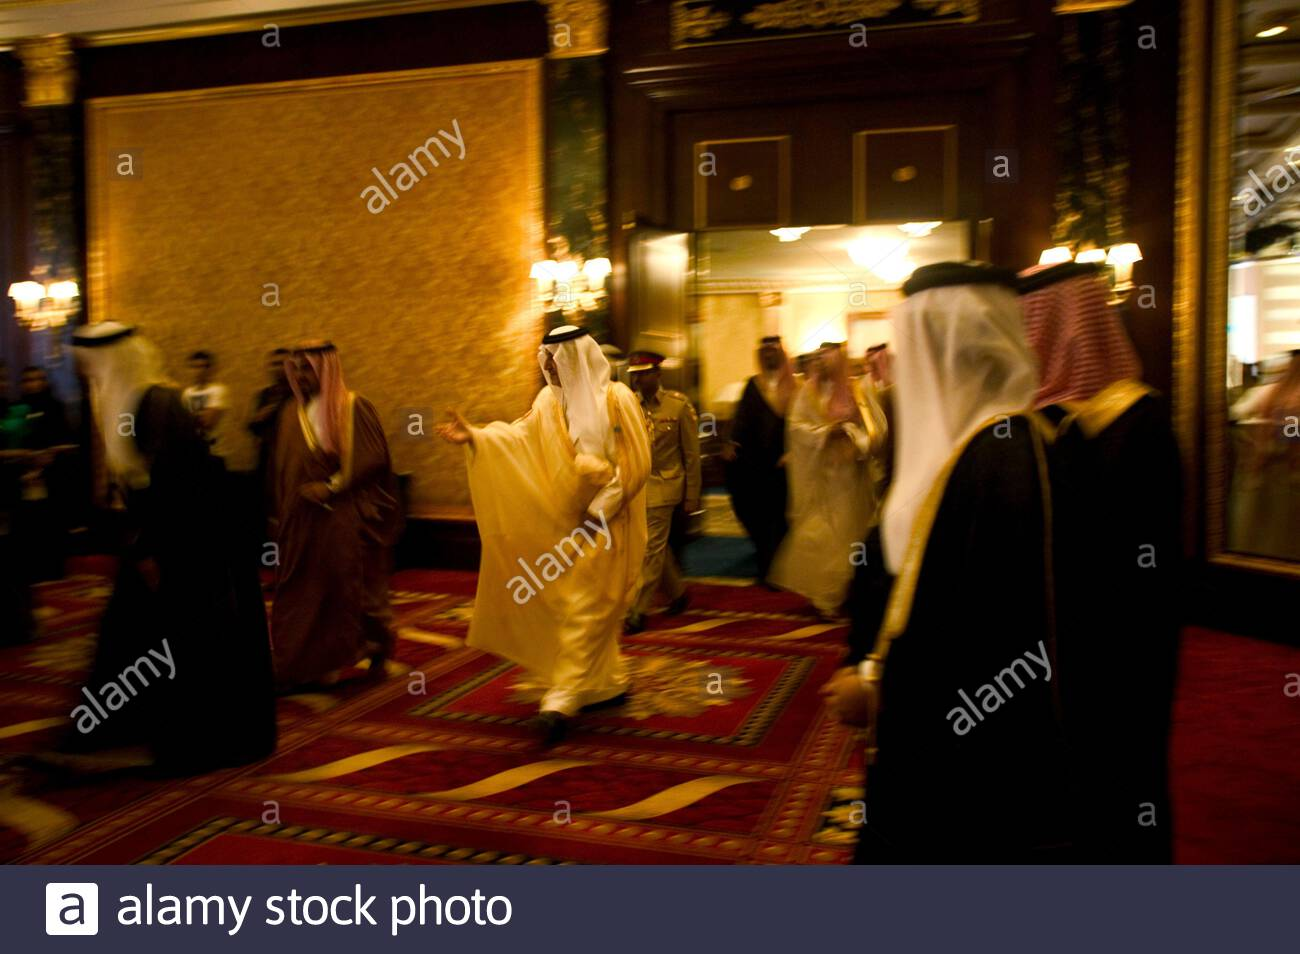 Prince Khalid Al Faisal, governor of Makkah province, along with dignitaries at the FIKR conference 2007 in Manama, Bahrain. Stock Photo